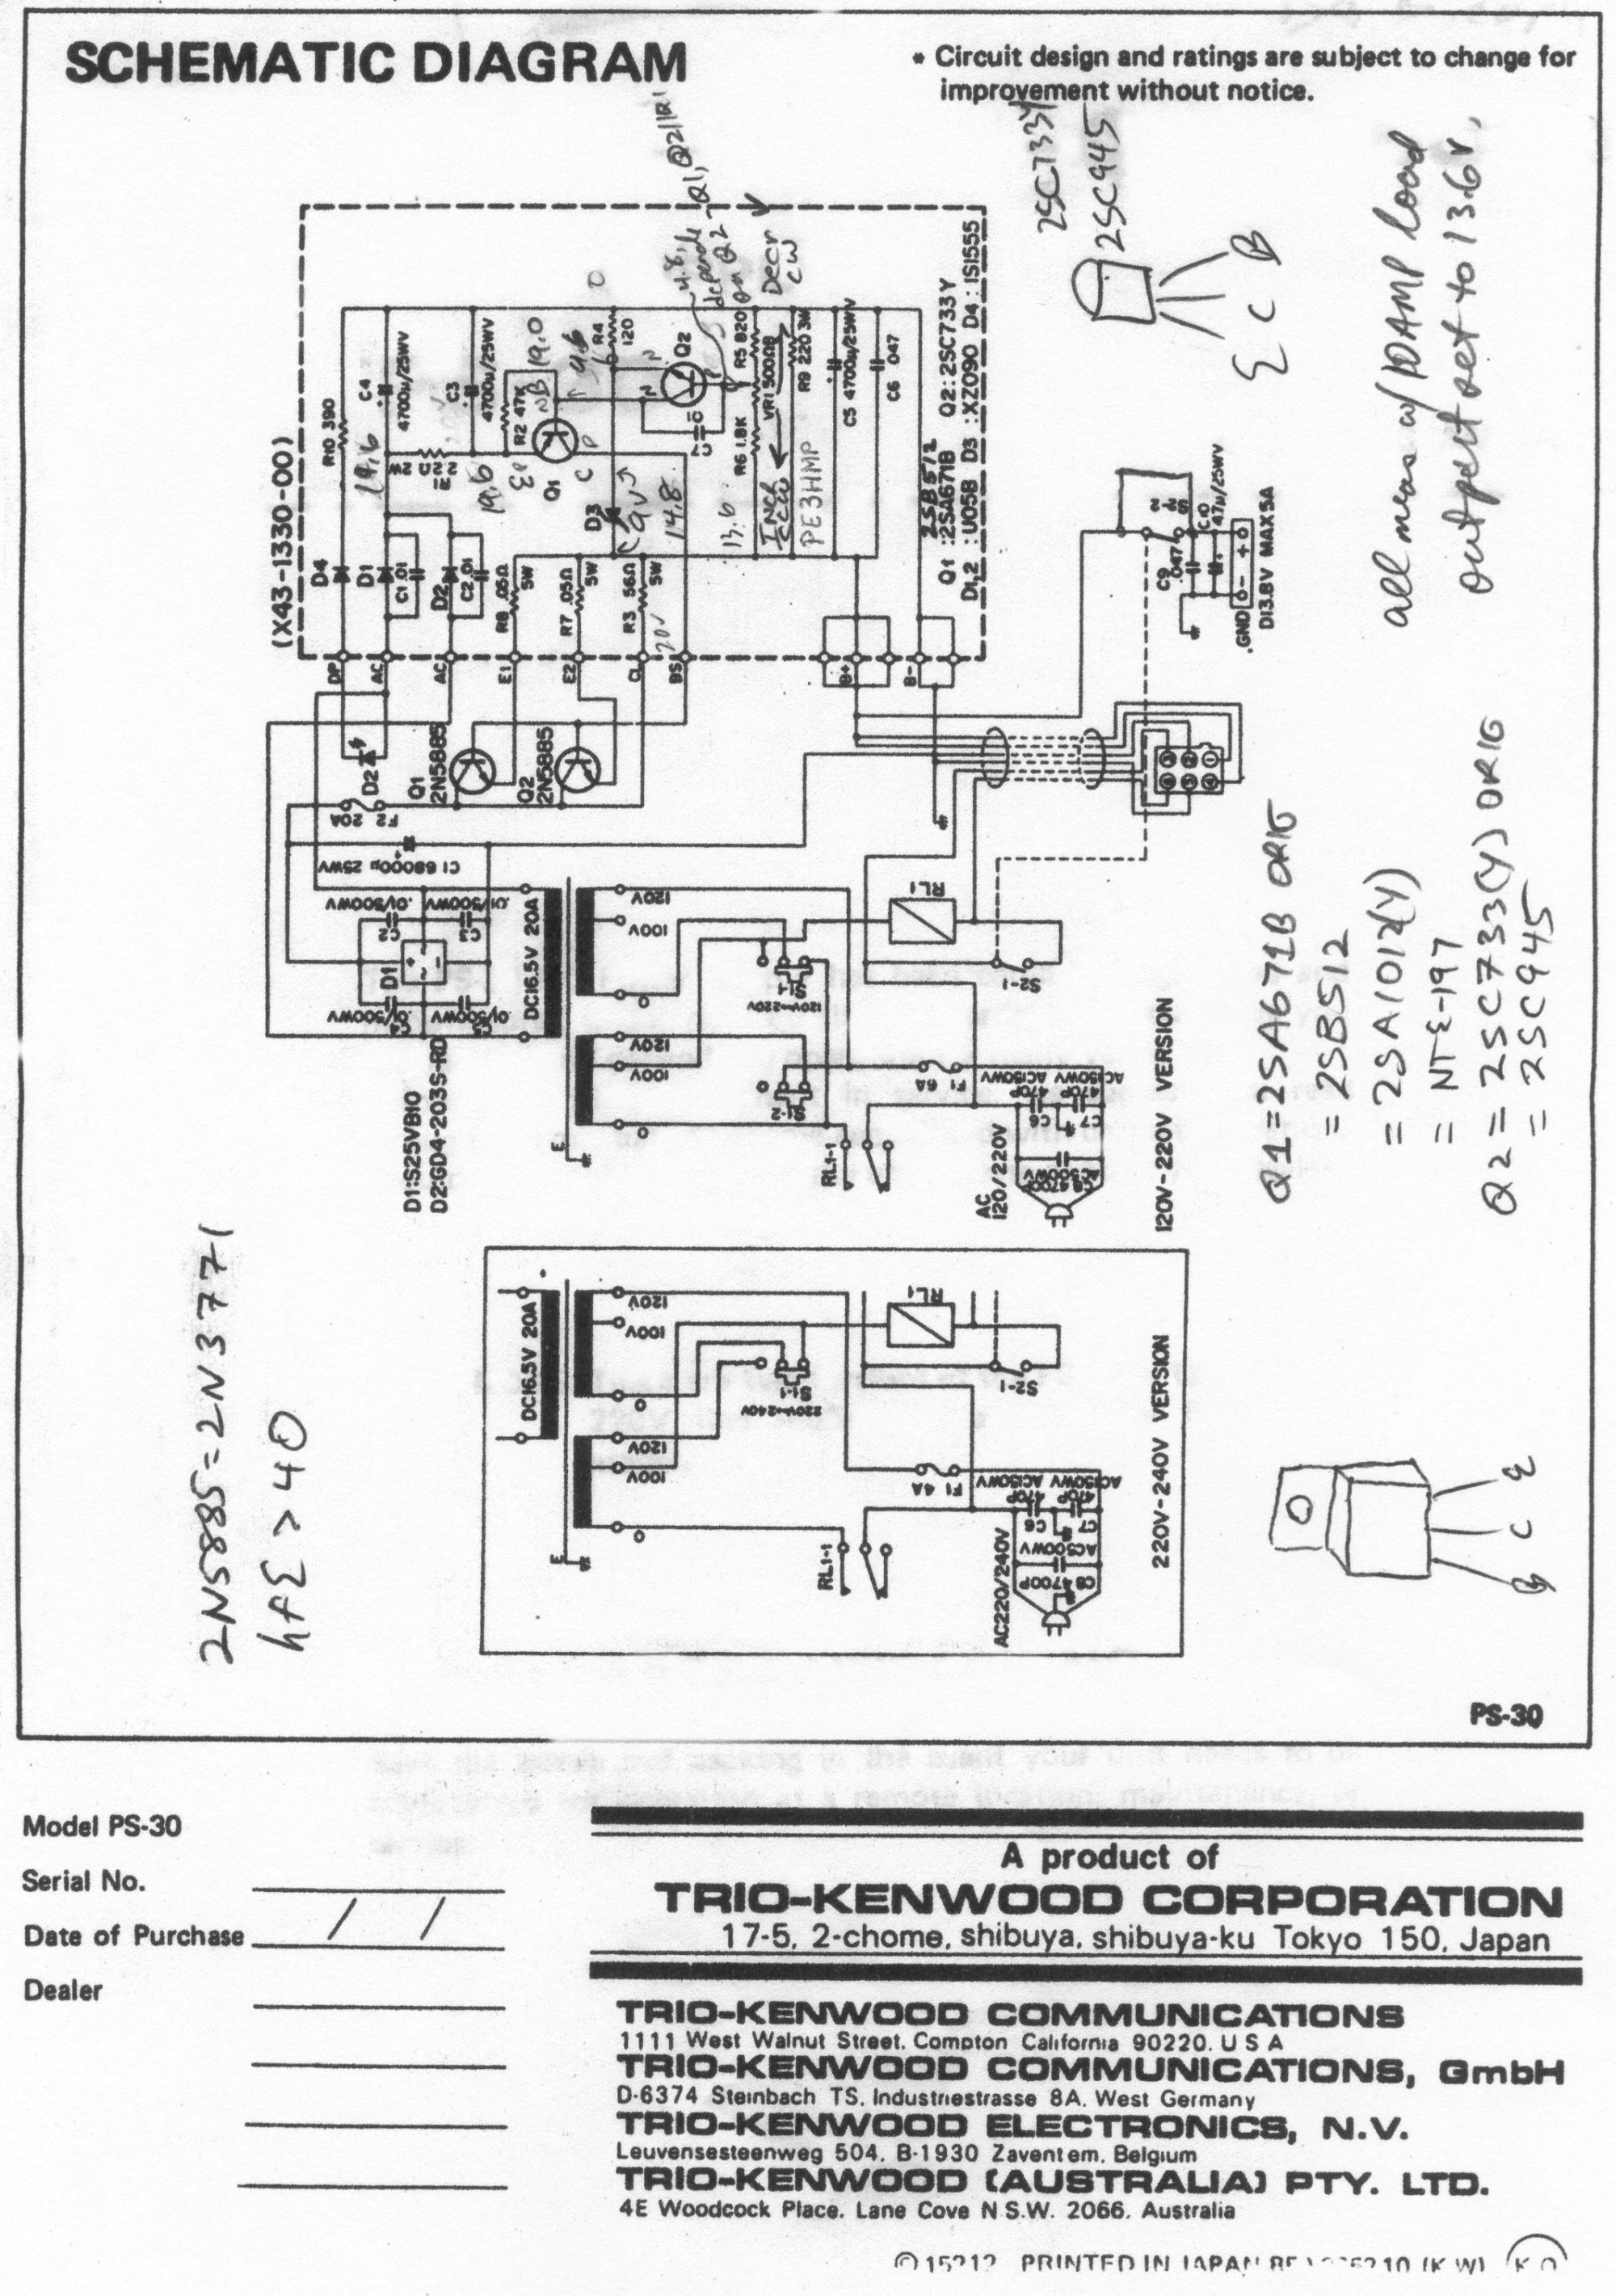 hight resolution of ps 30 schematic with repair notes